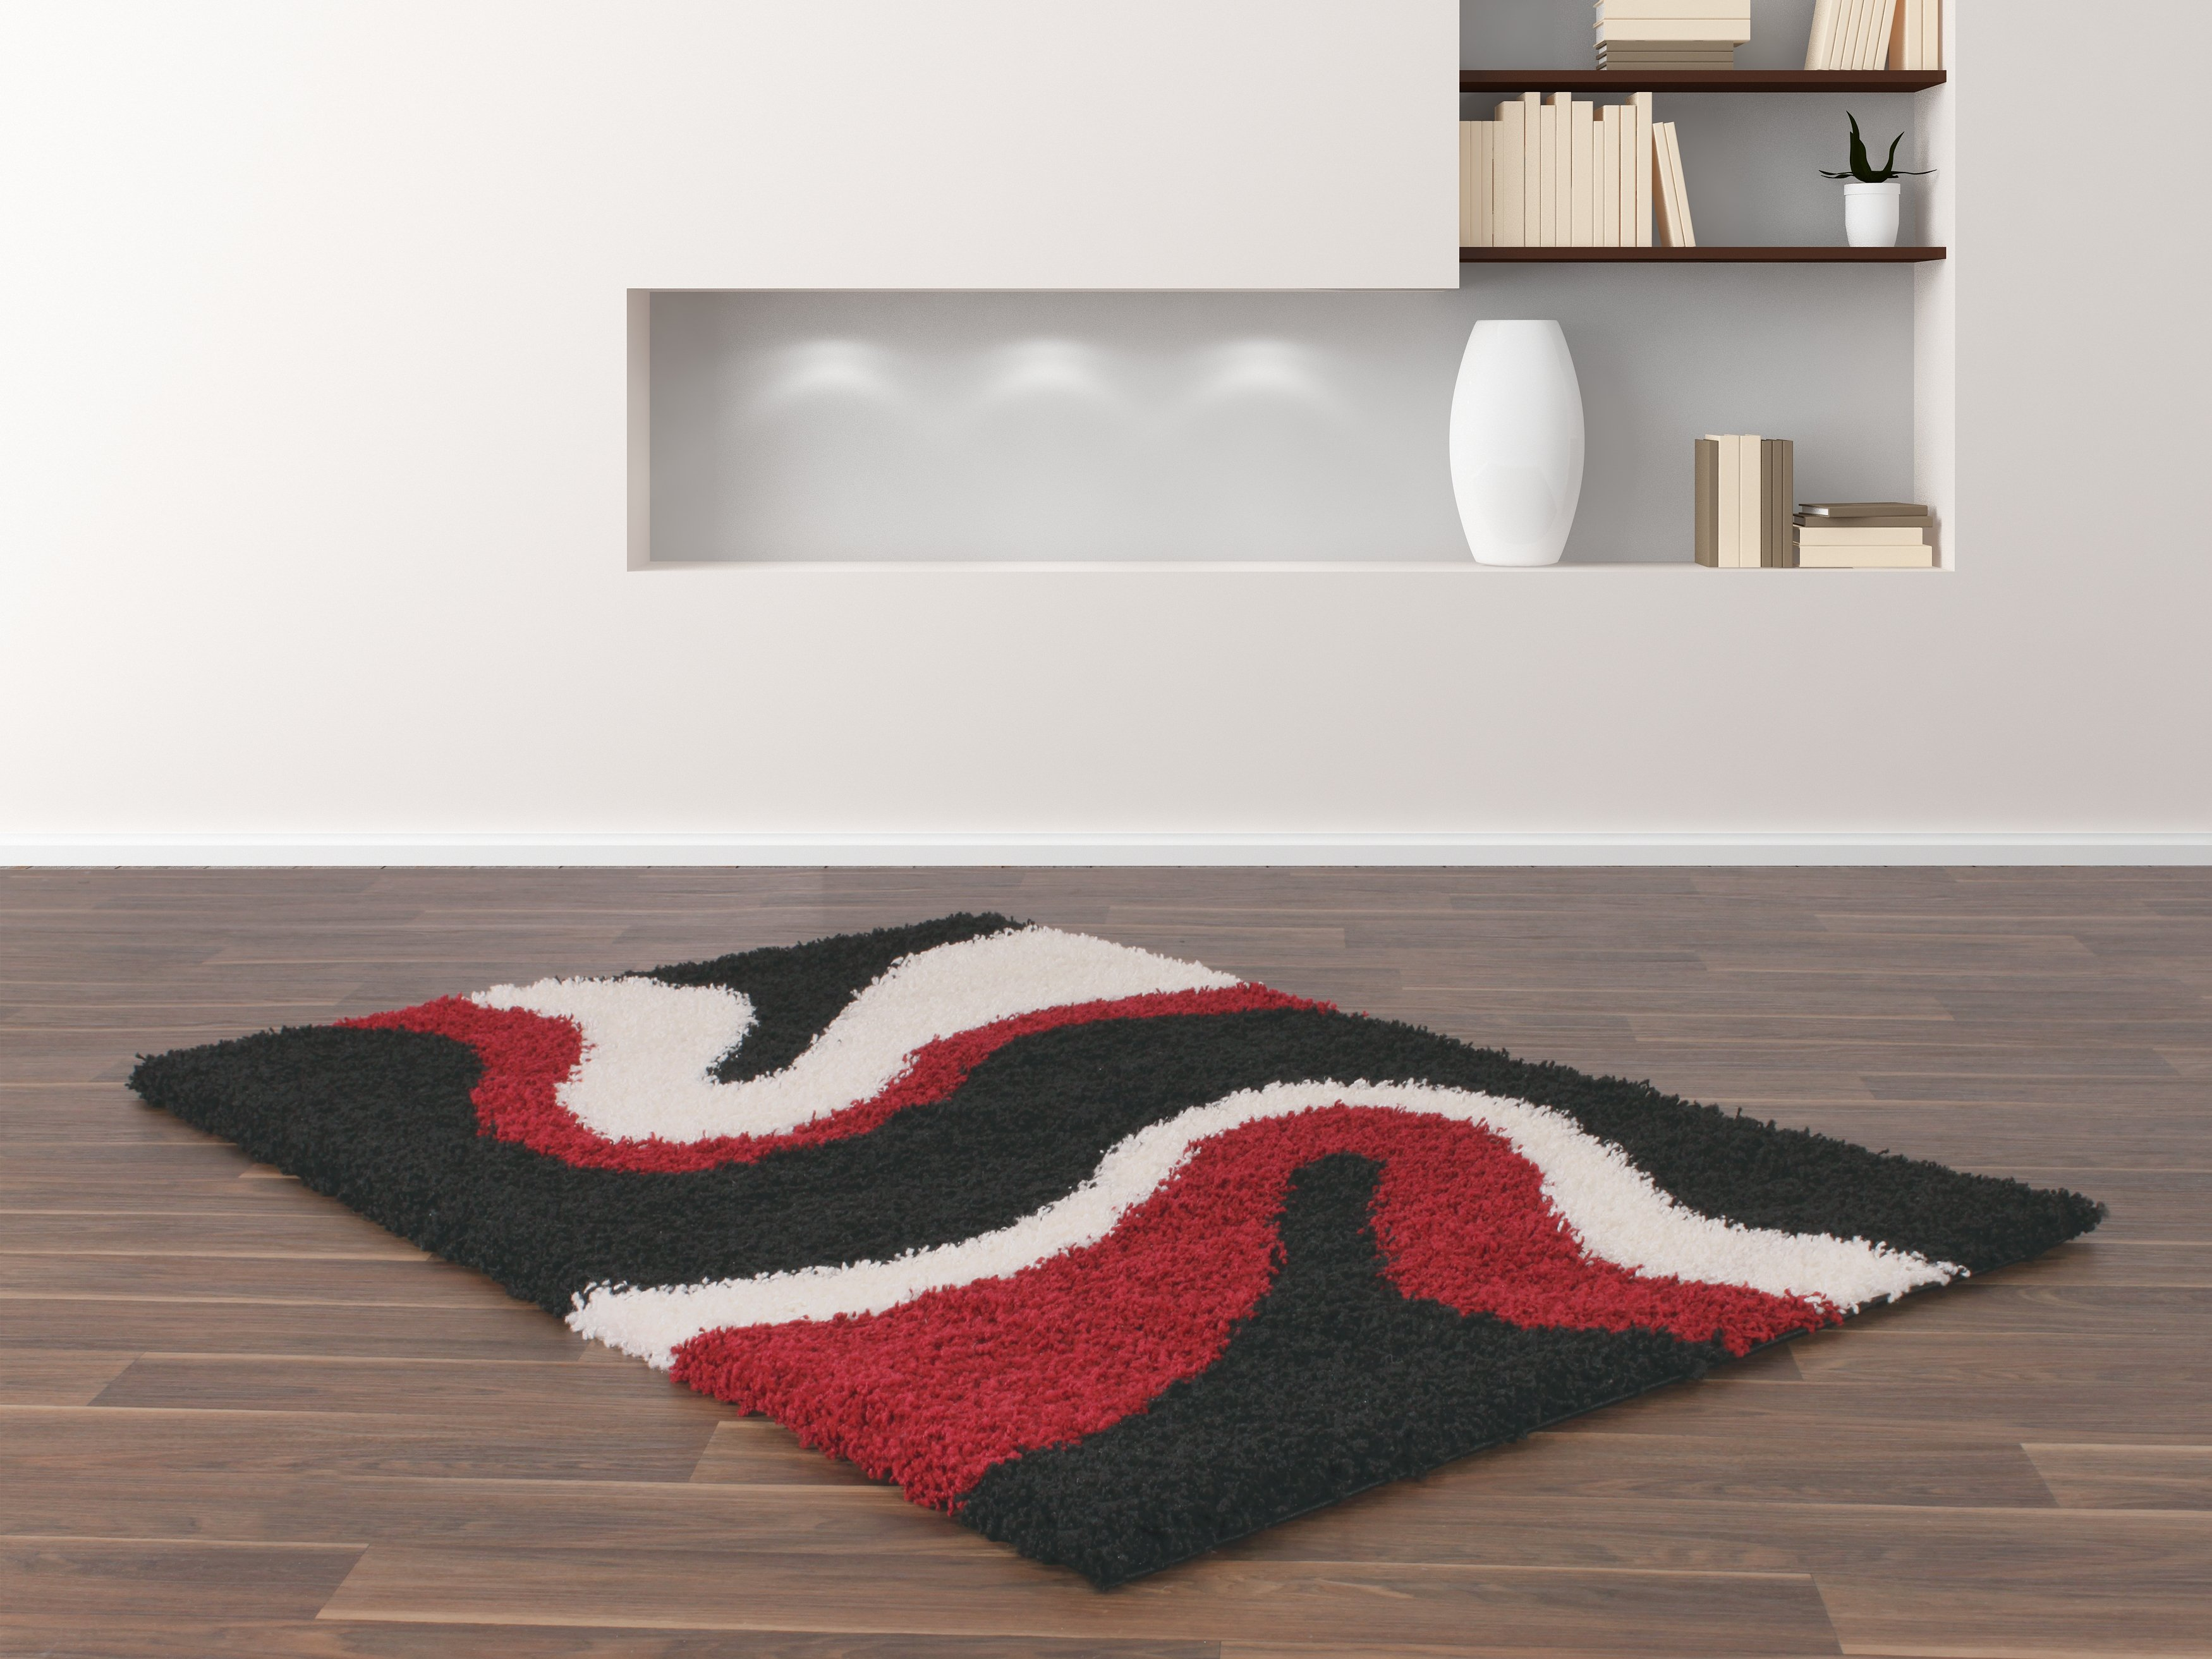 Sienna Ripple Rug - 80 x 150cm - Red and Black.